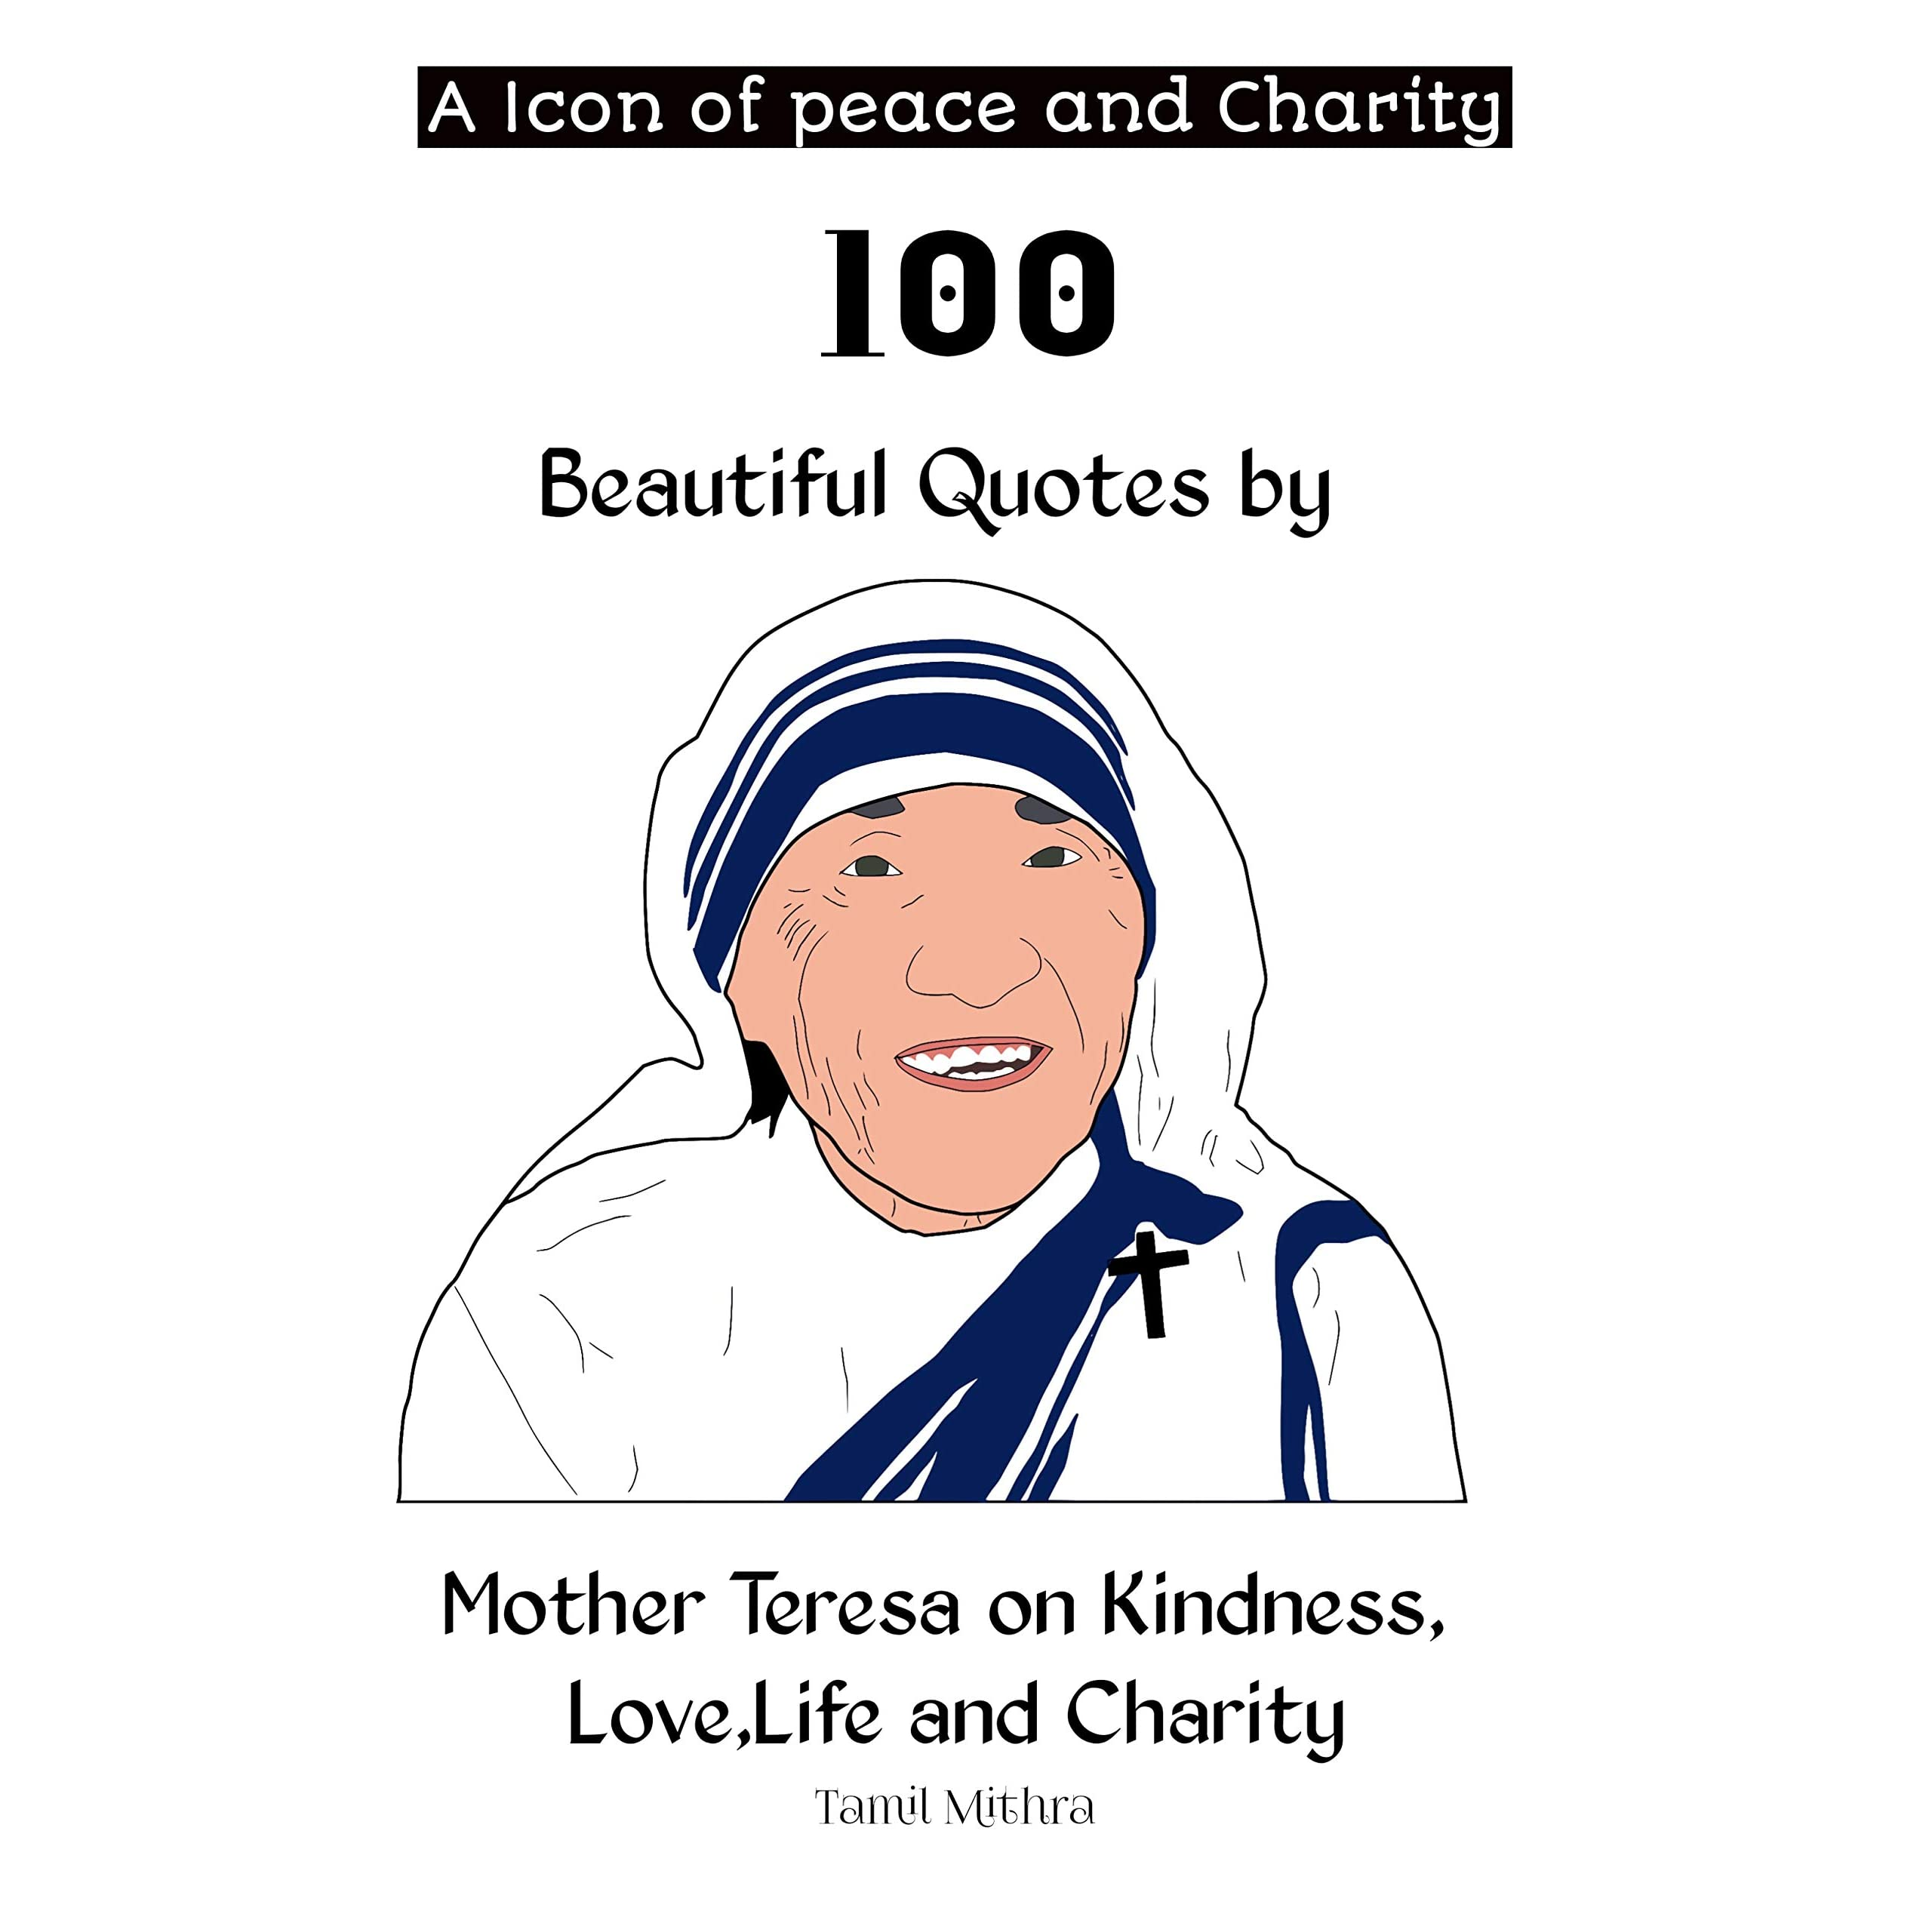 A Icon Of Peace And Charity 100 Beautiful Quotes By Mother Teresa On Kindness Love Life And Charity By Tamil Mithra